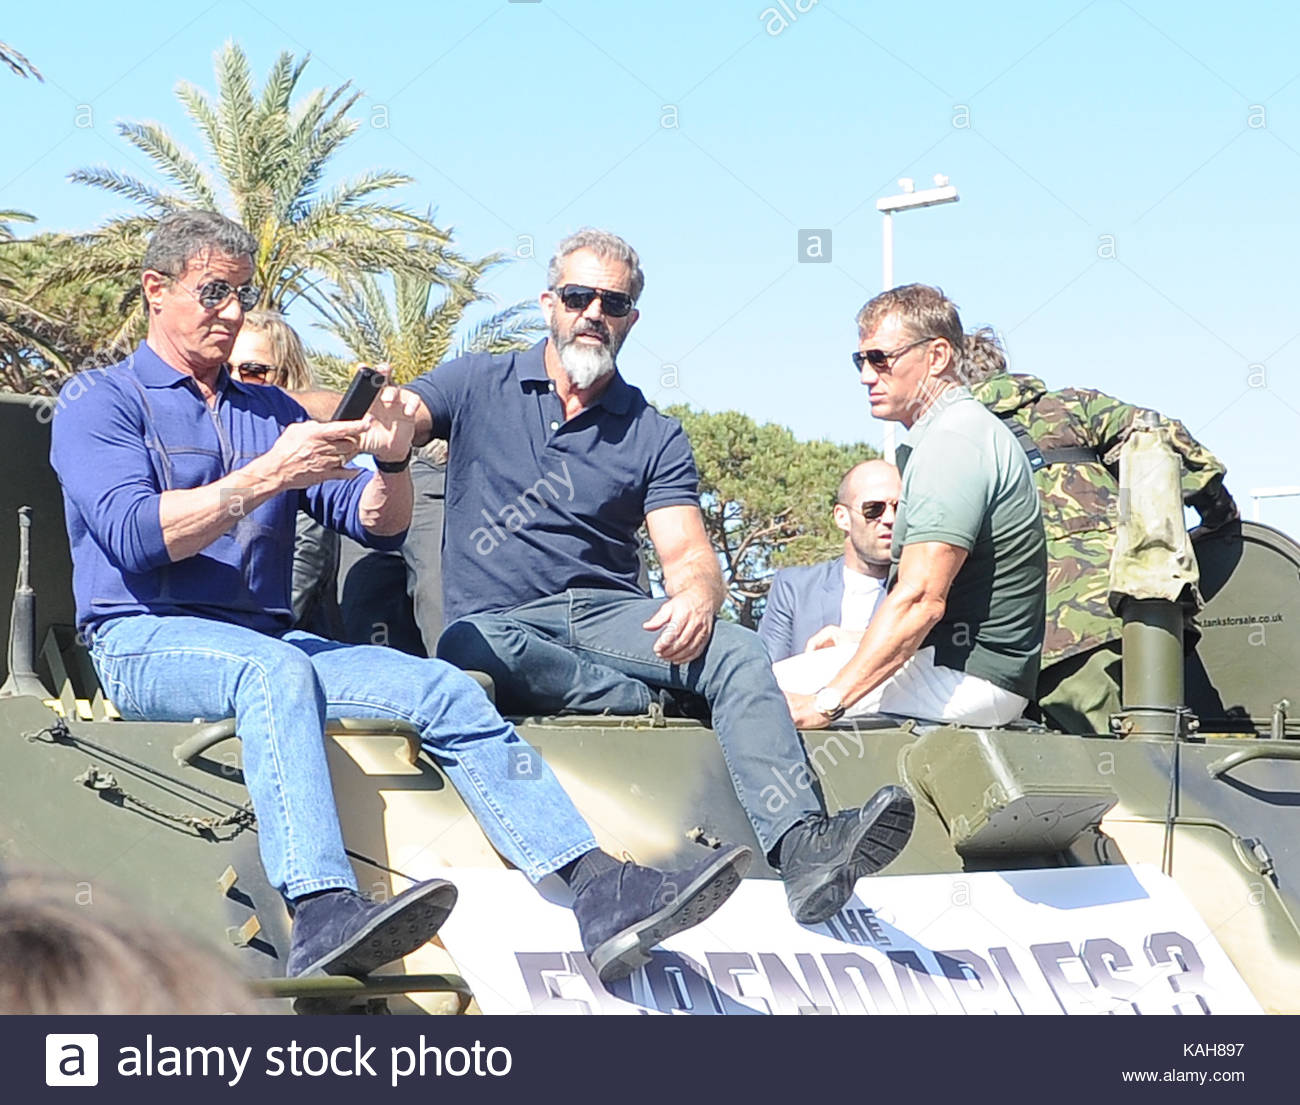 Stars of the Expendables arrived at the Cannes Film Festival on armored cars 05/18/2014 45